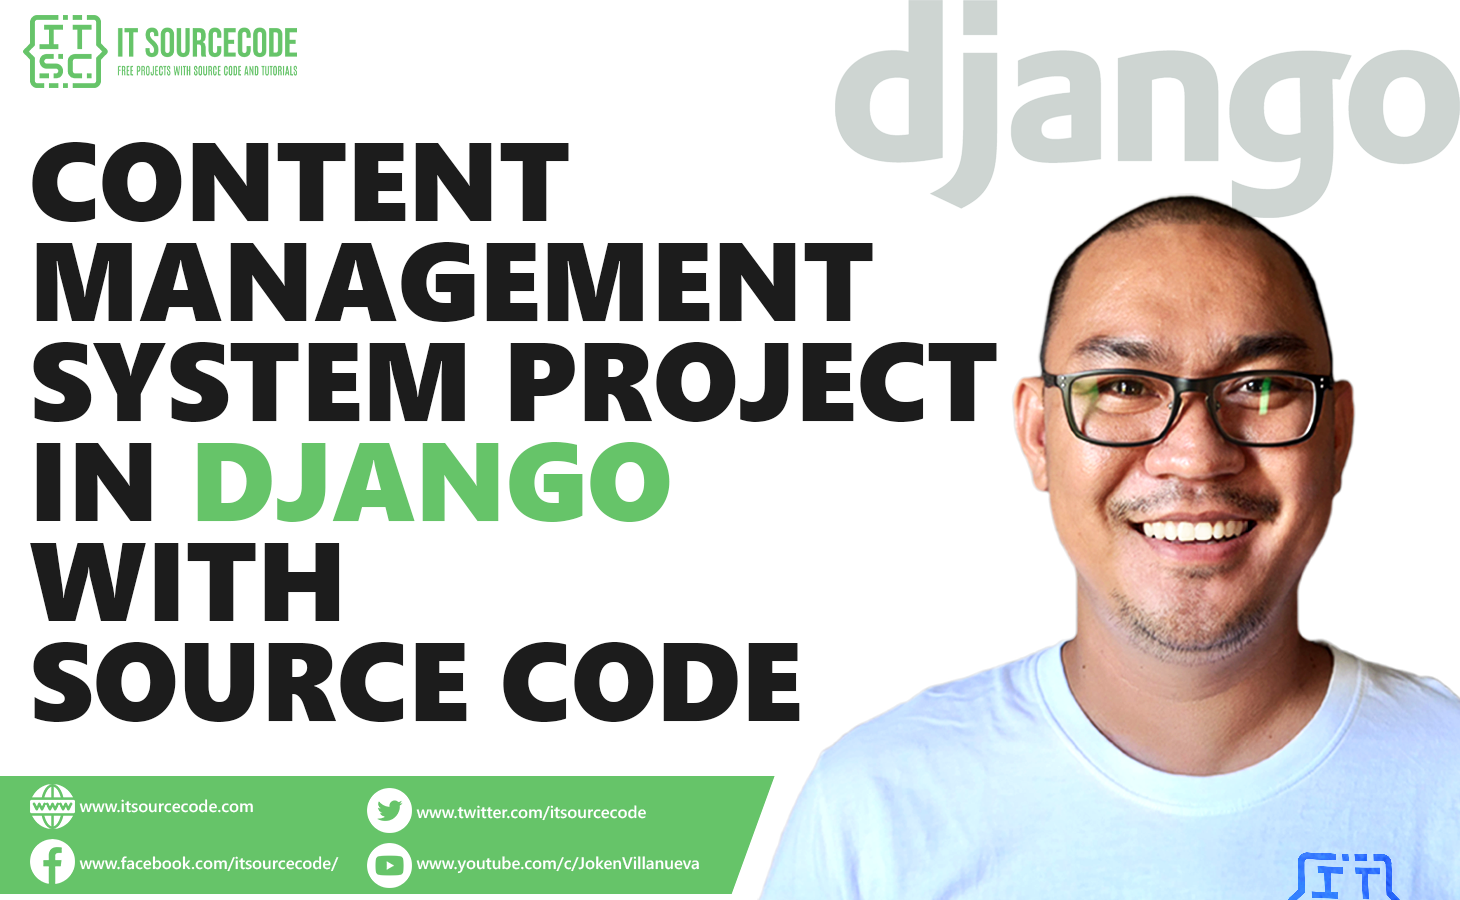 Content Management System Project in Django with Source Code